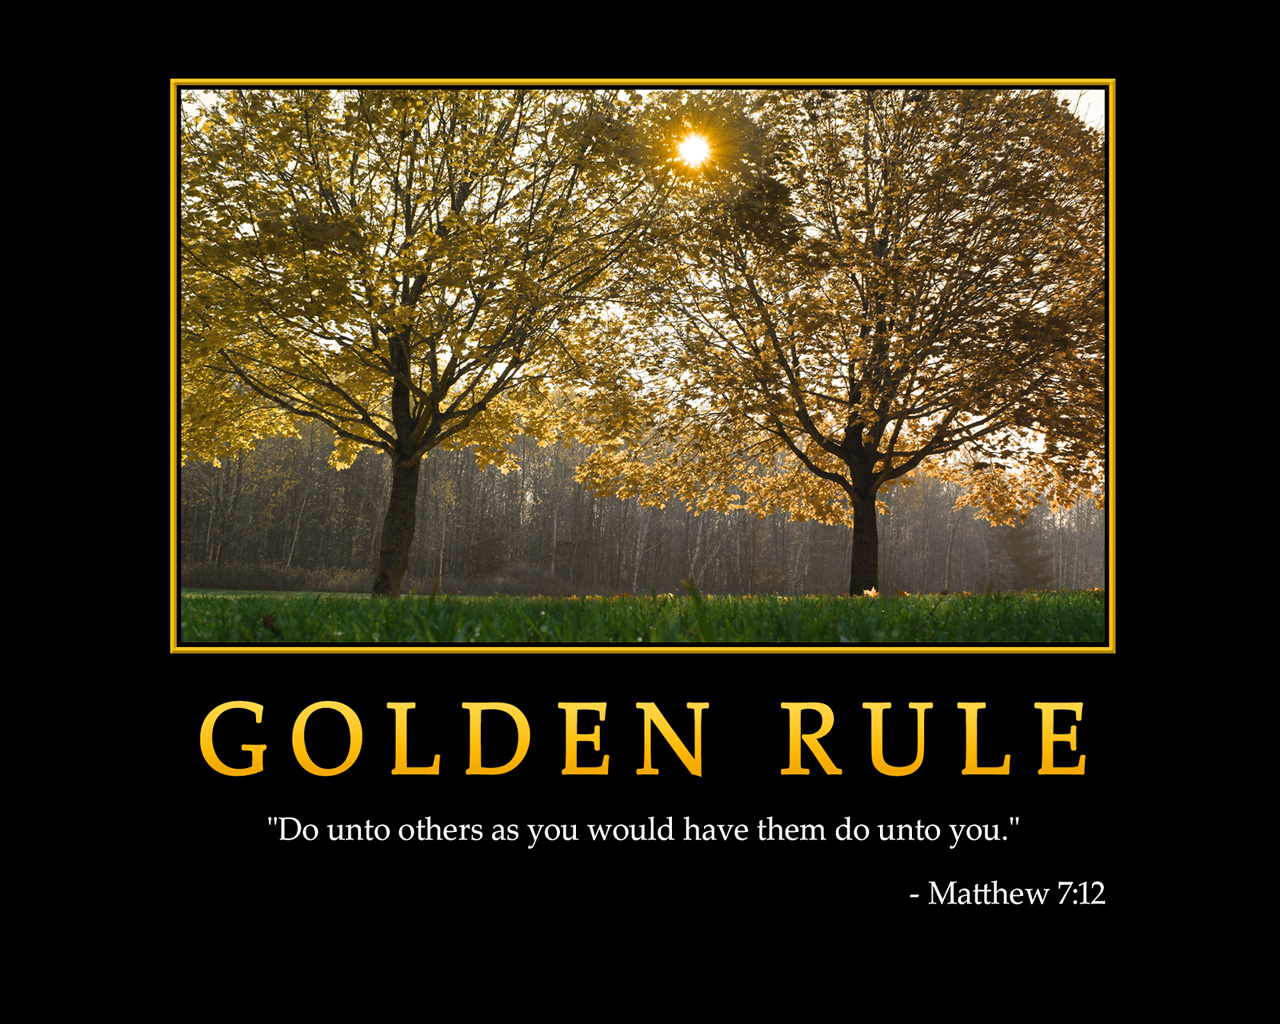 golden rules creating thoughtful thought leadership